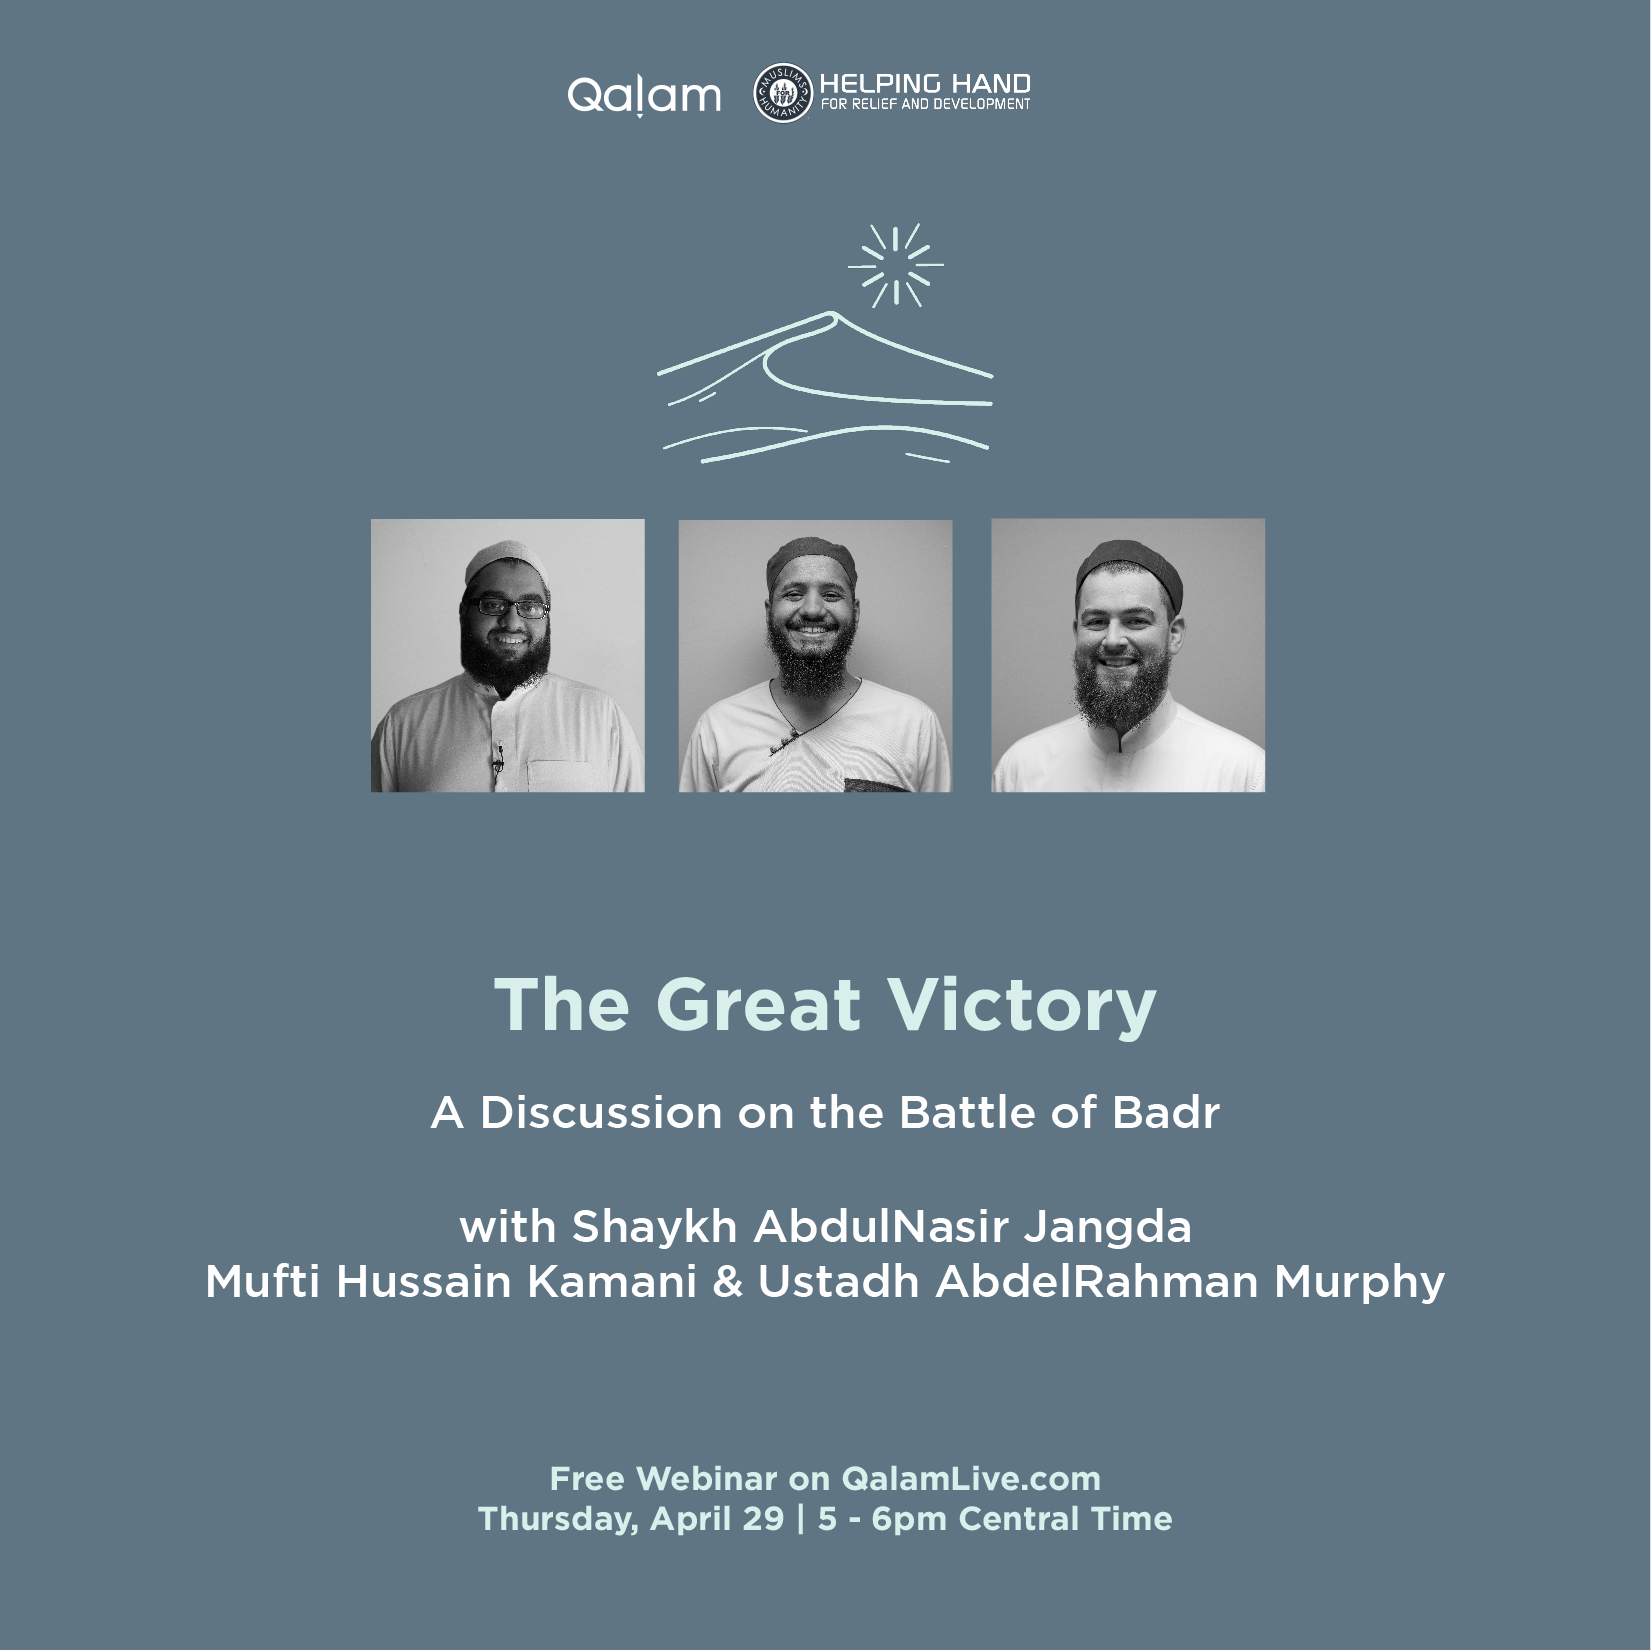 The Great Victory: A Discussion on the Battle of Badr